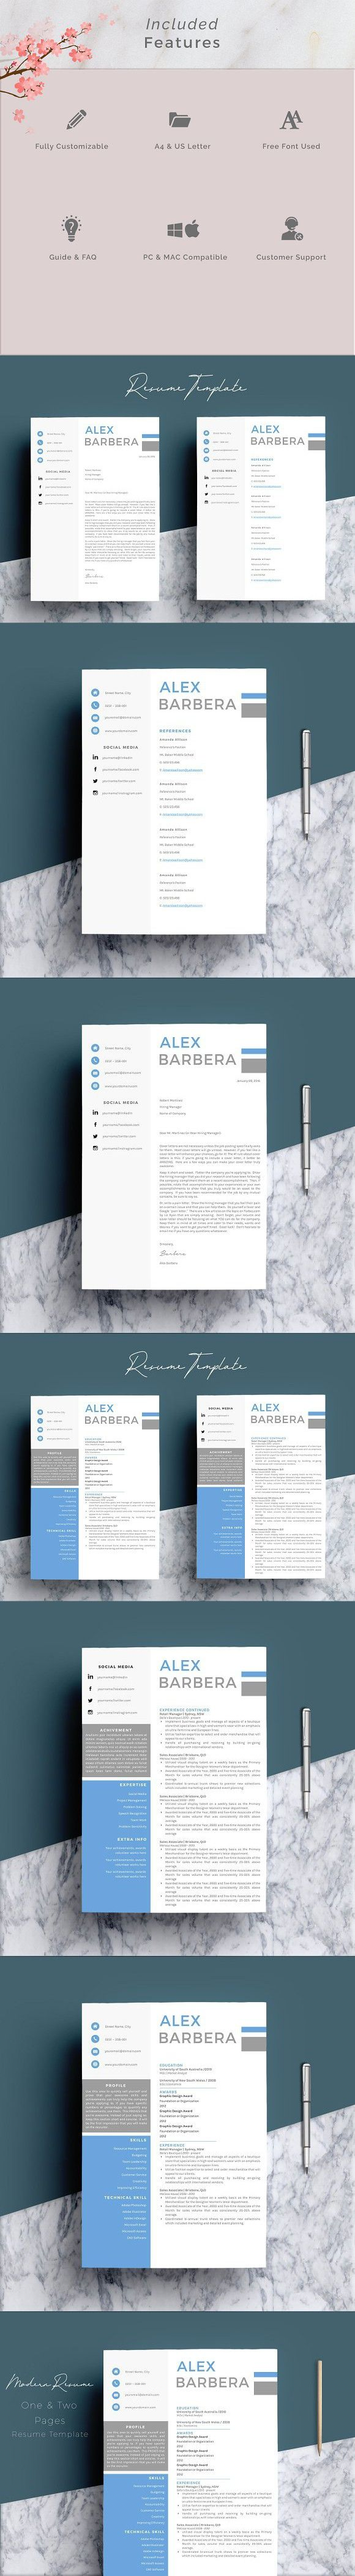 pages resume templates%0A Resume Template   Pages